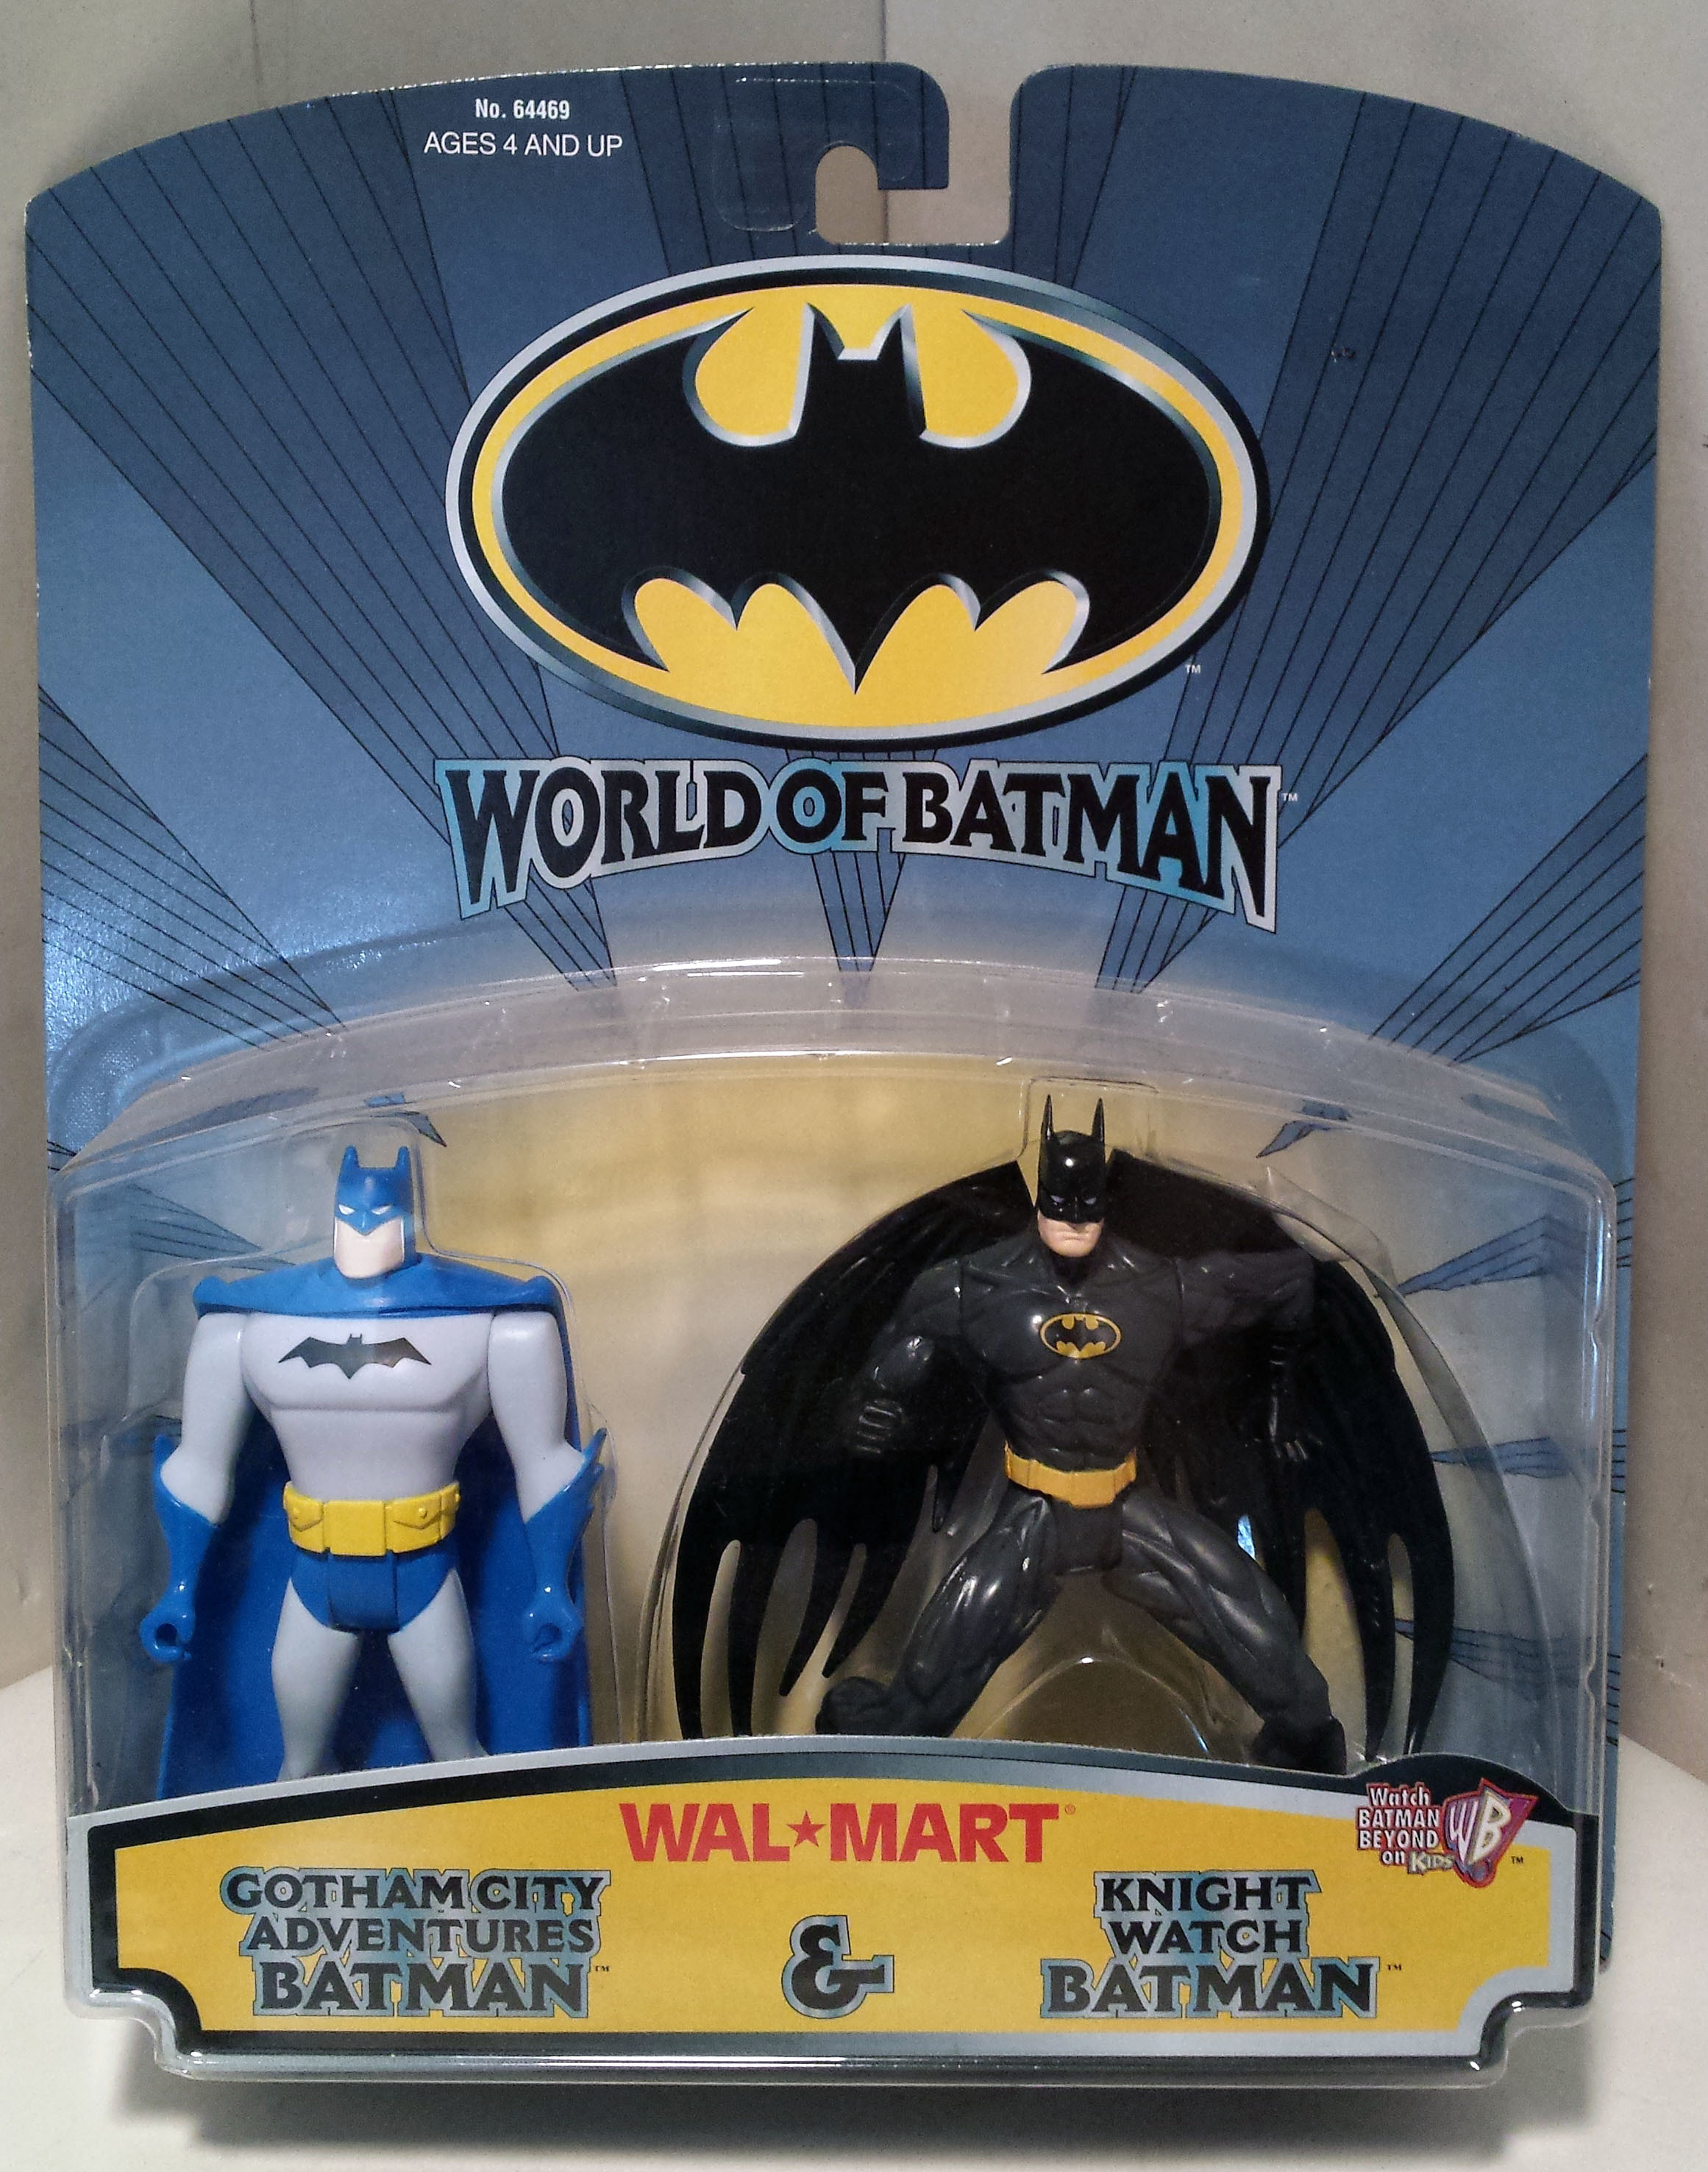 HASBRO '99 WALMART GOTHAM CITY ADVENTURES BATMAN & KNIGHT WATCH 5